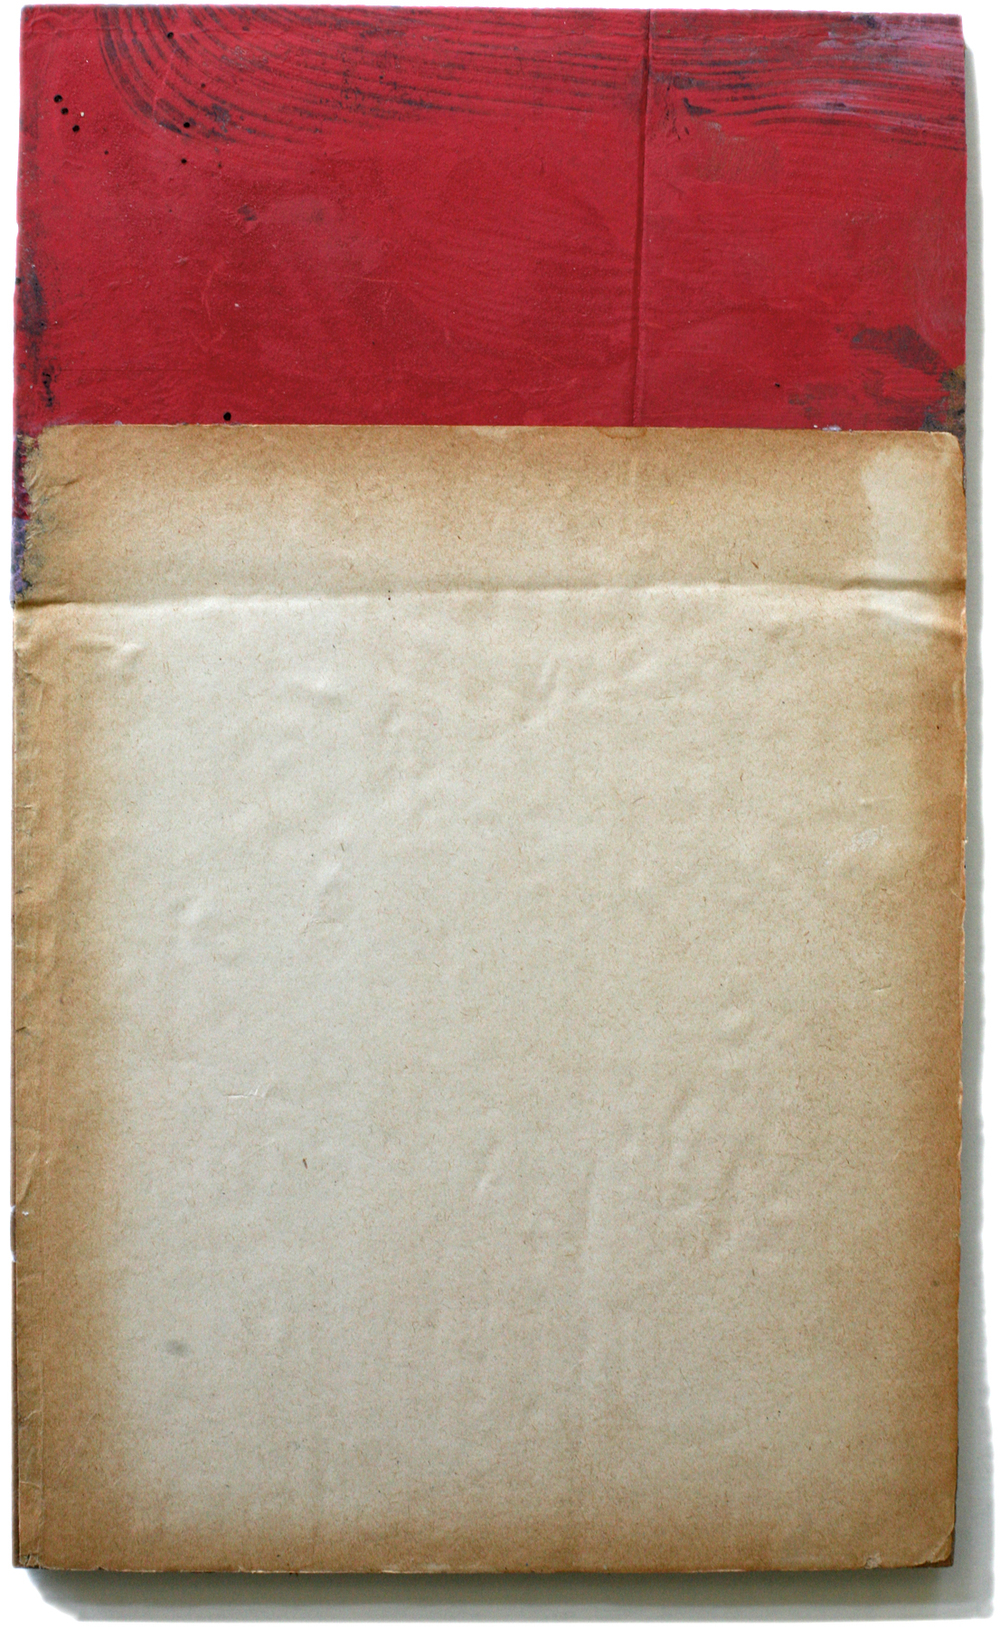 "Rothko, 10"" x 6"", 2008-2010 (private collection)"